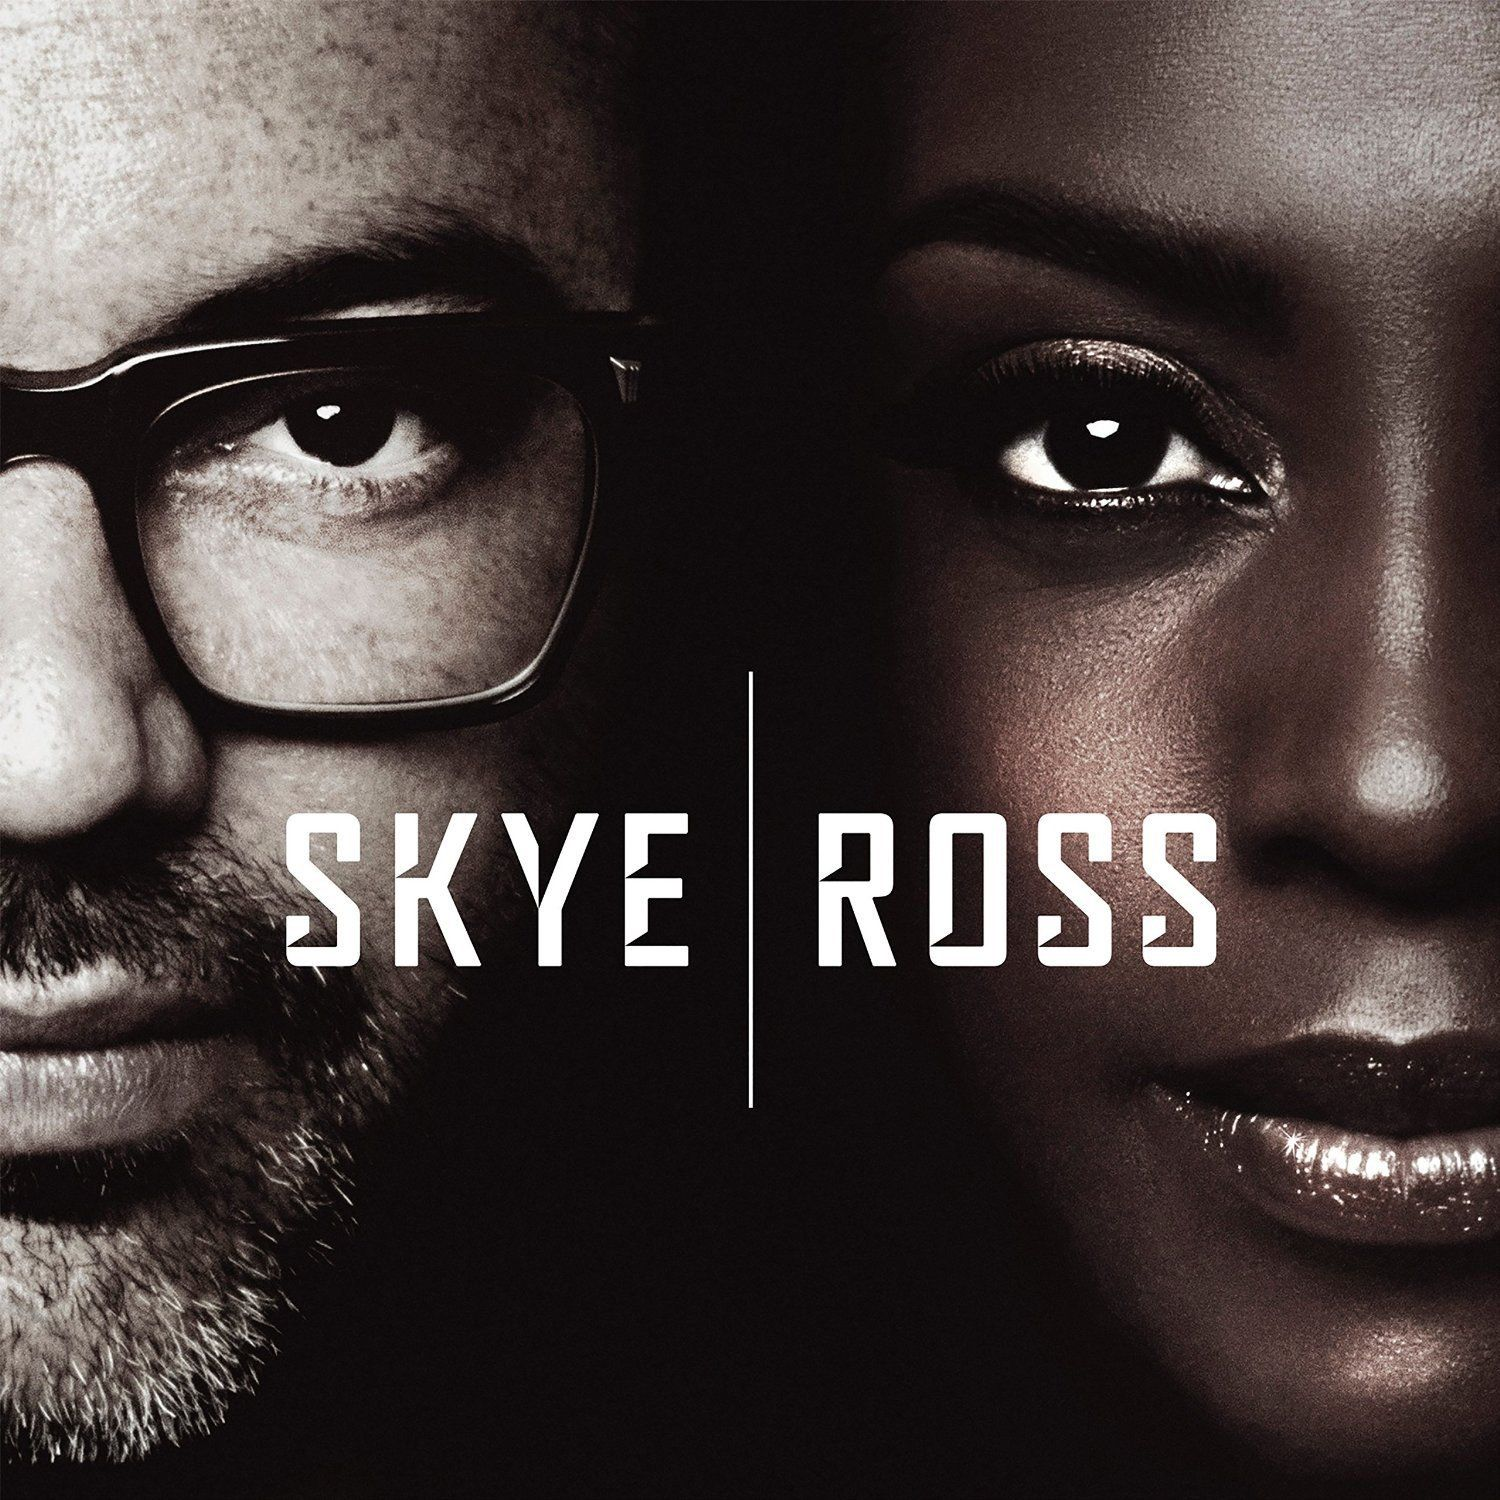 Skye | Ross - Skye | Ross album cover